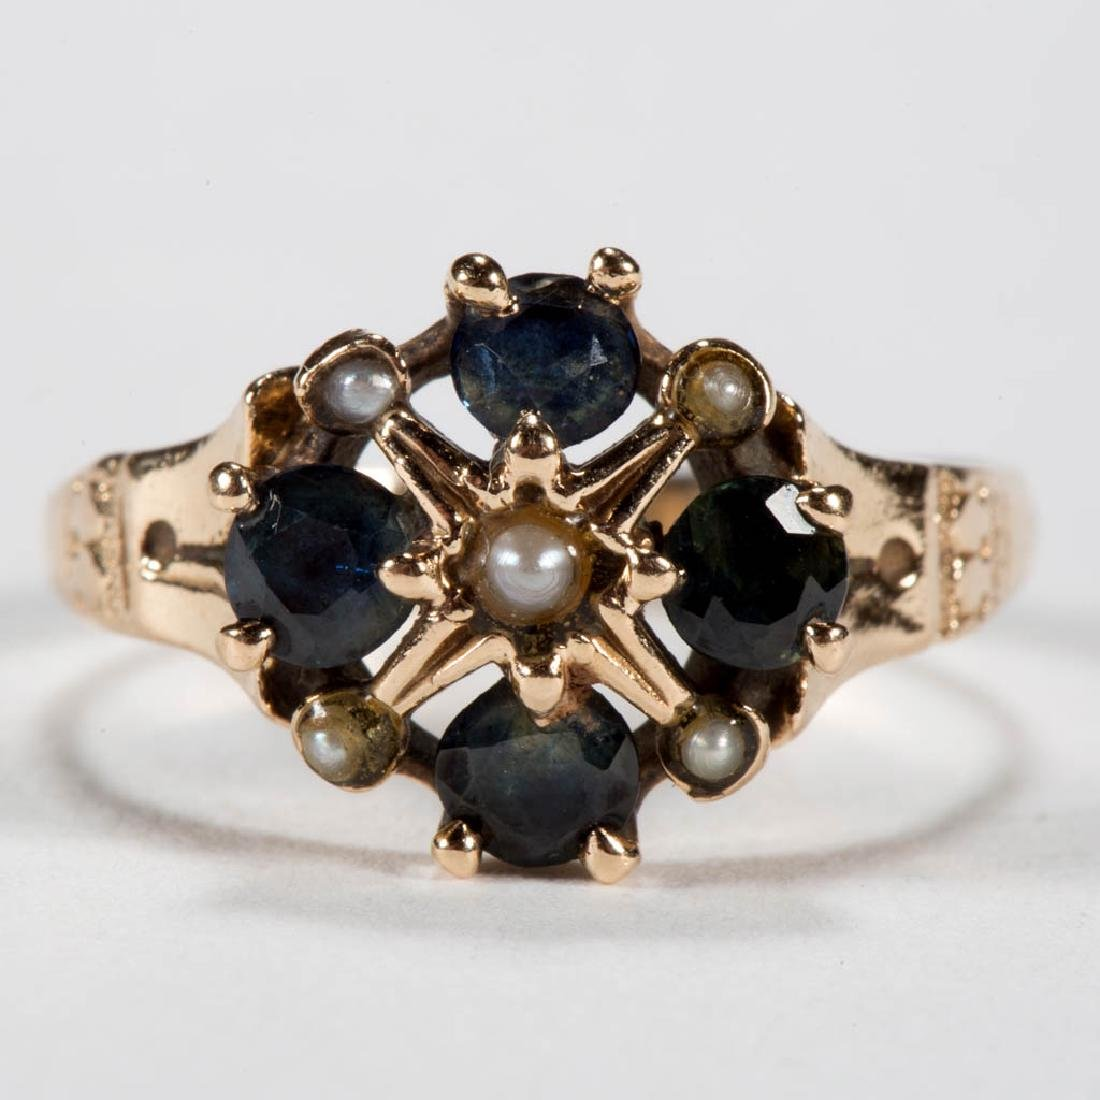 ANTIQUE 14K GOLD LADY'S RING